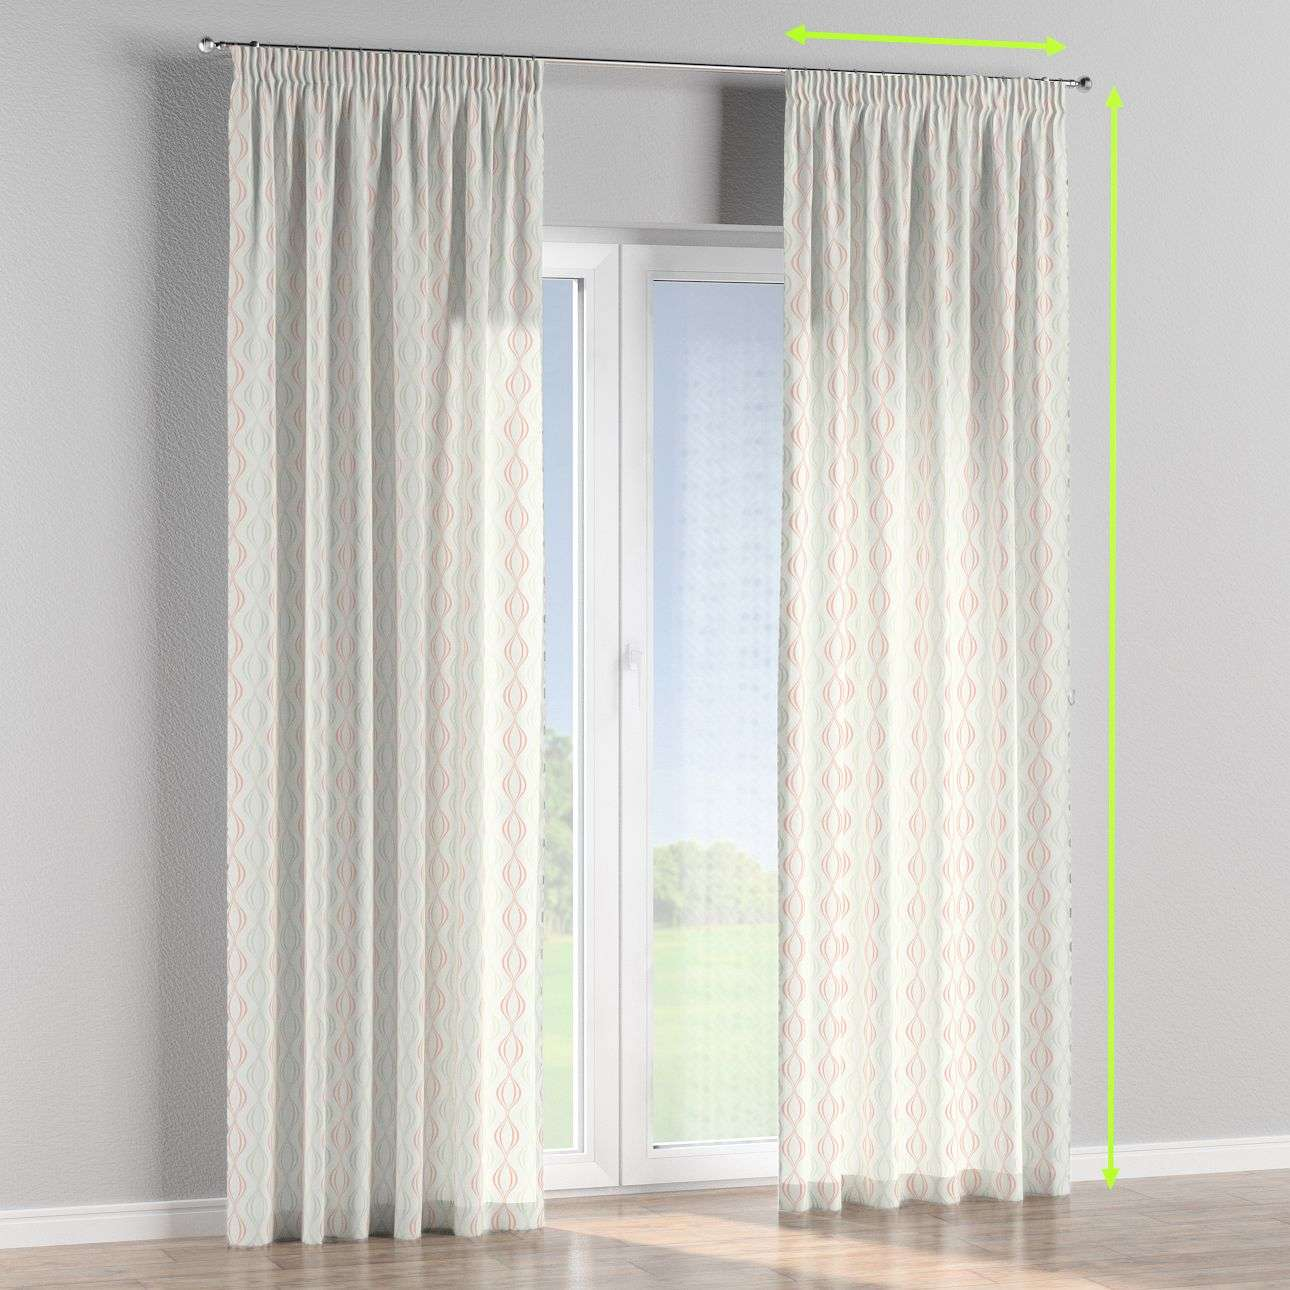 Pencil pleat curtains in collection Geometric, fabric: 141-49